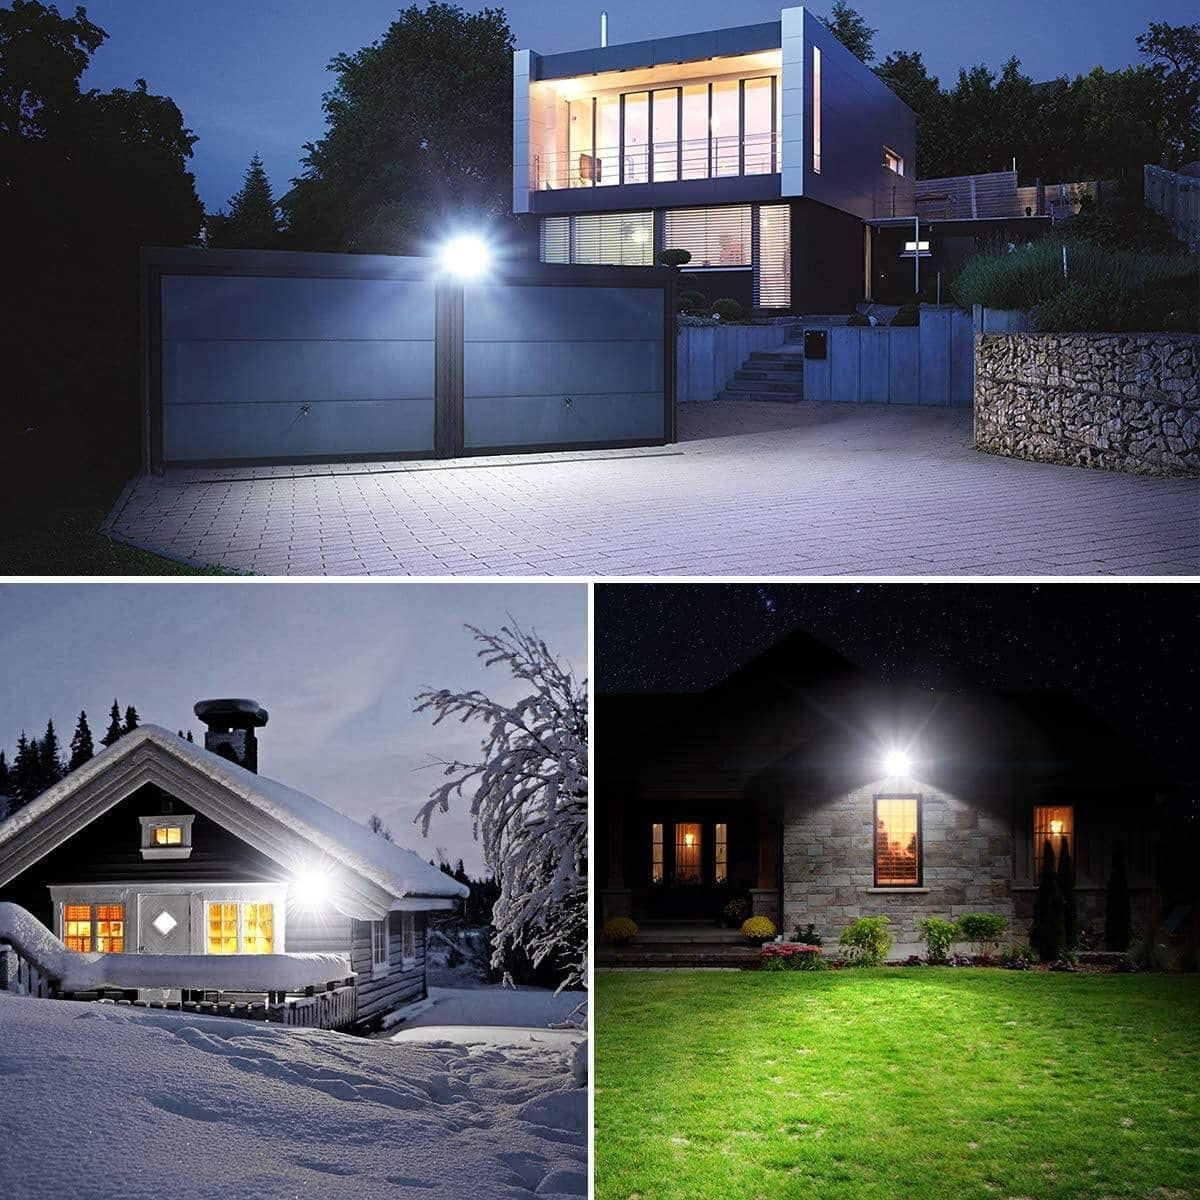 Onforu 2 pack 50W LED Flood Light for $24.49, 2 Pack 100W LED Flood Light for $41.99, IP66 Waterproof Daylight White Outdoor Security Lights + Free Shipping